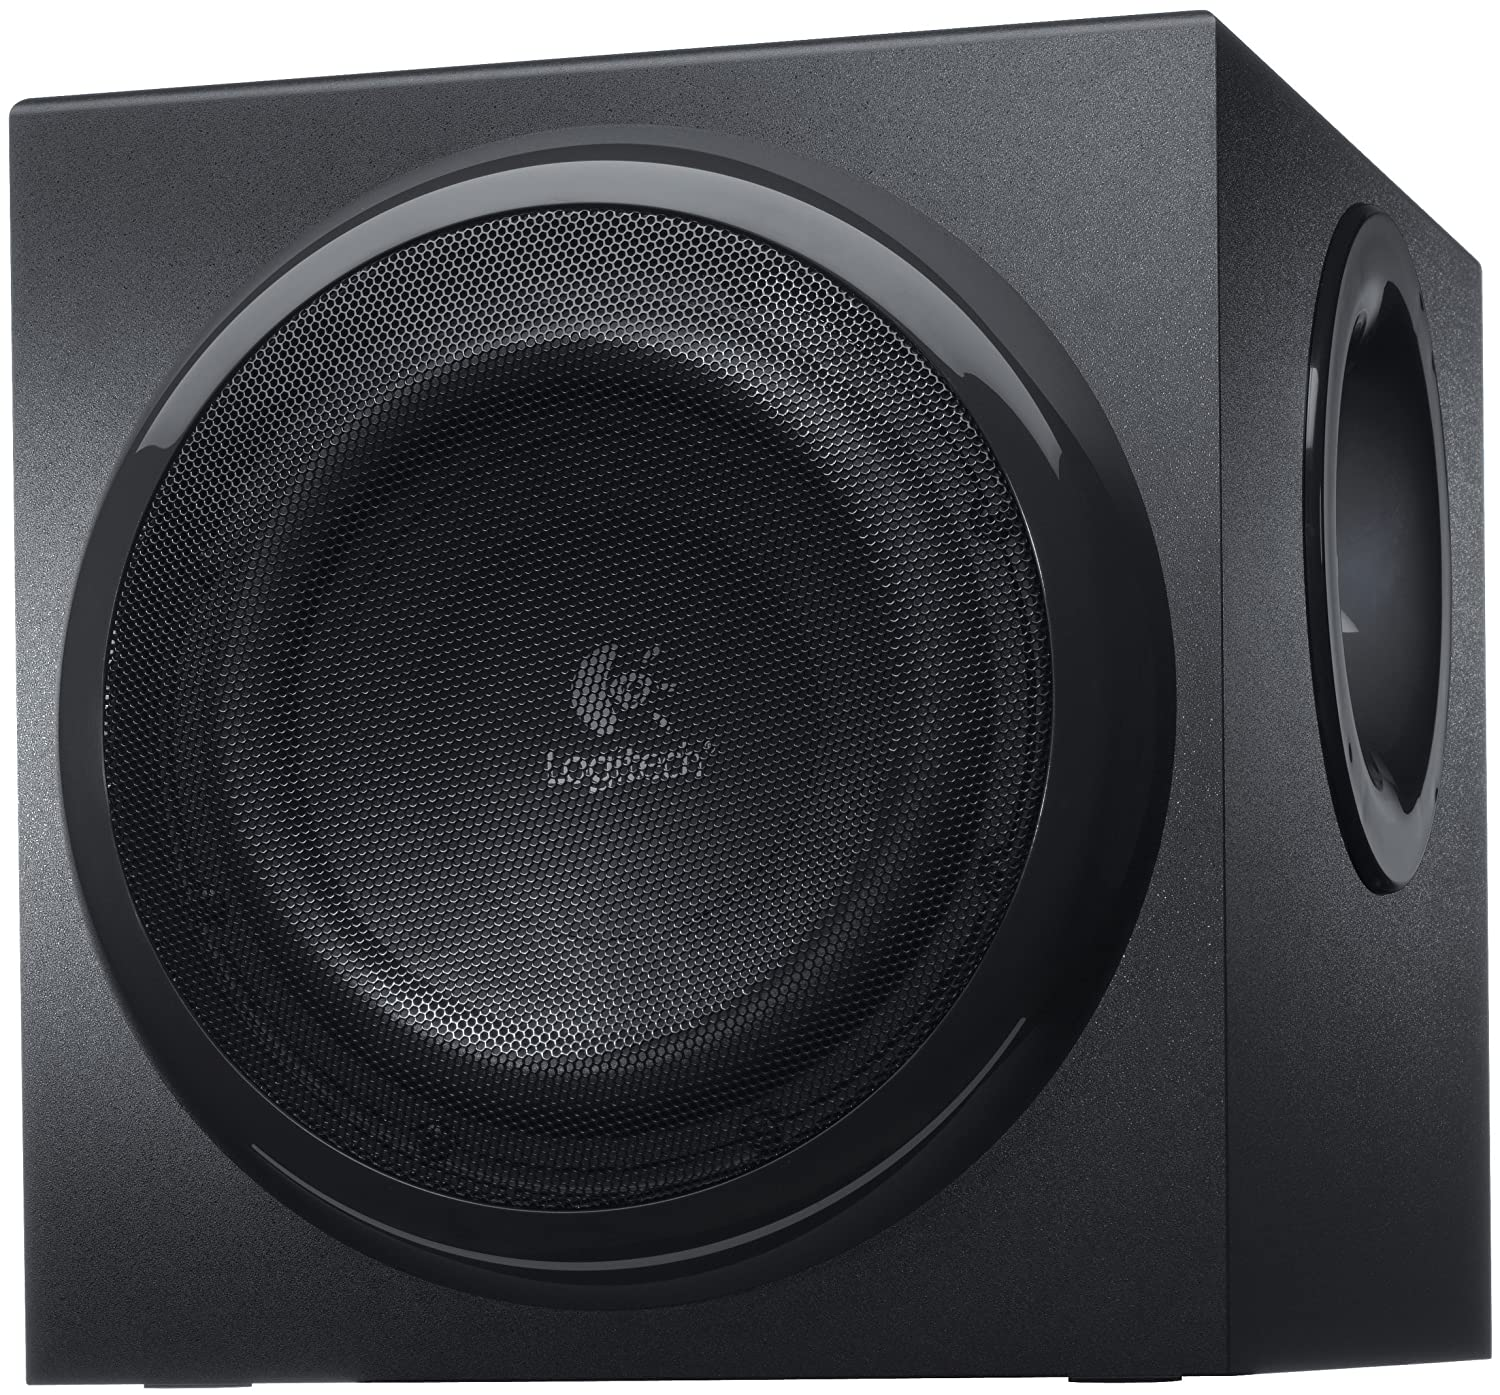 amazoncom logitech z906 surround sound speakers rms 500 w subwoofer 165 w 3d stereo electronics amazoncom logitech z906 surround sound speakers